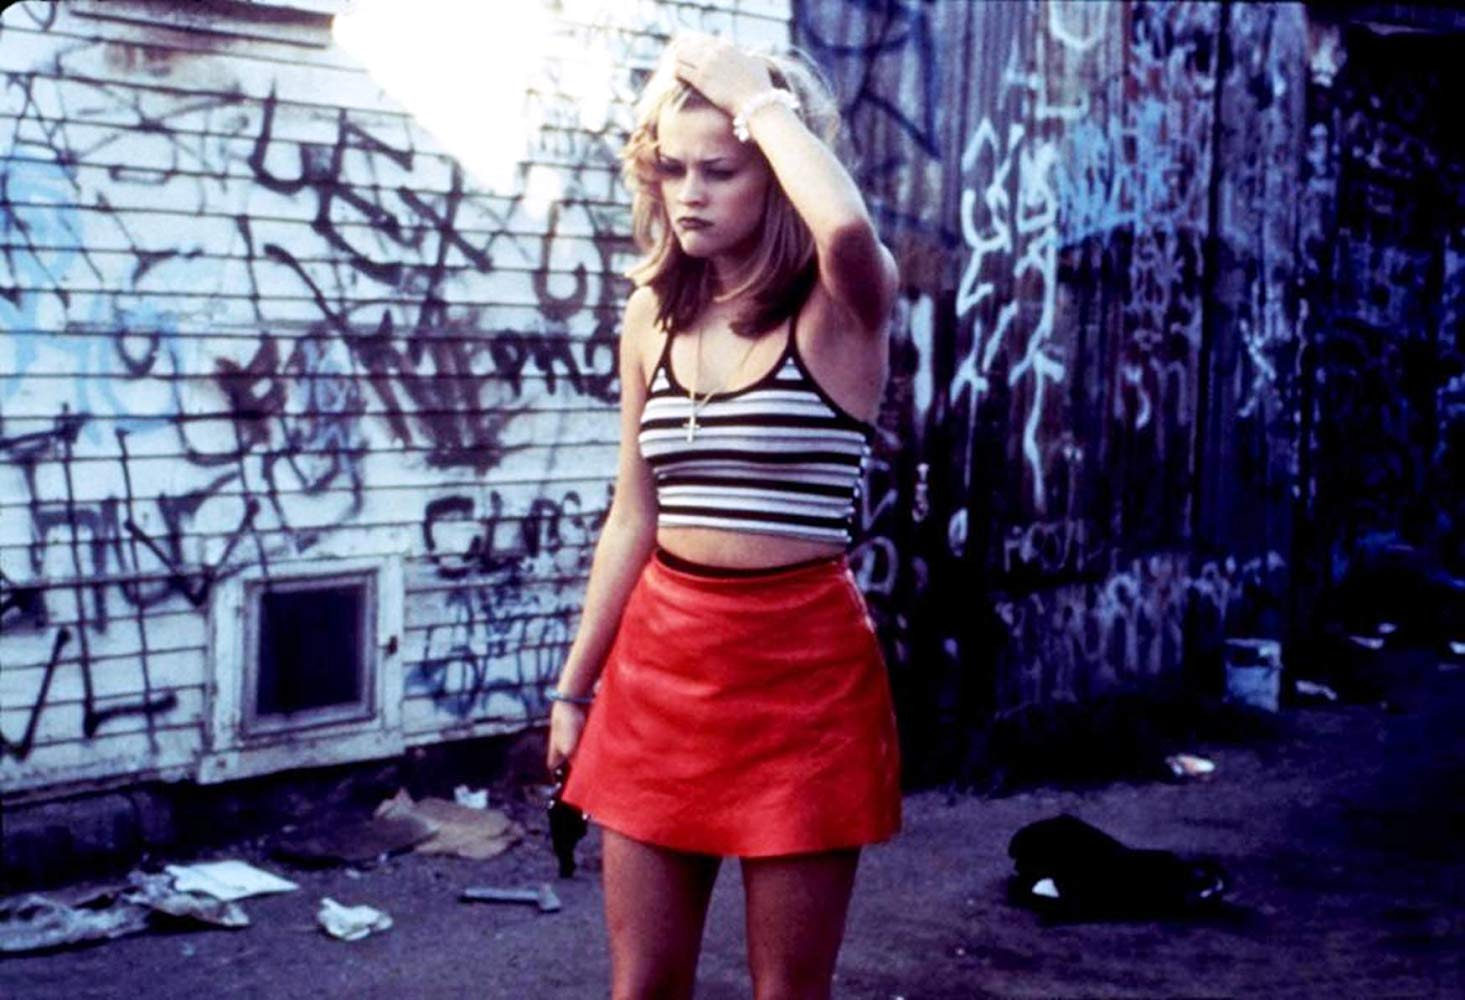 Reese Witherspoon as Vanessa Lutz, a no-longer innocent modern version of Little Red Riding Hood in Freeway (1996)